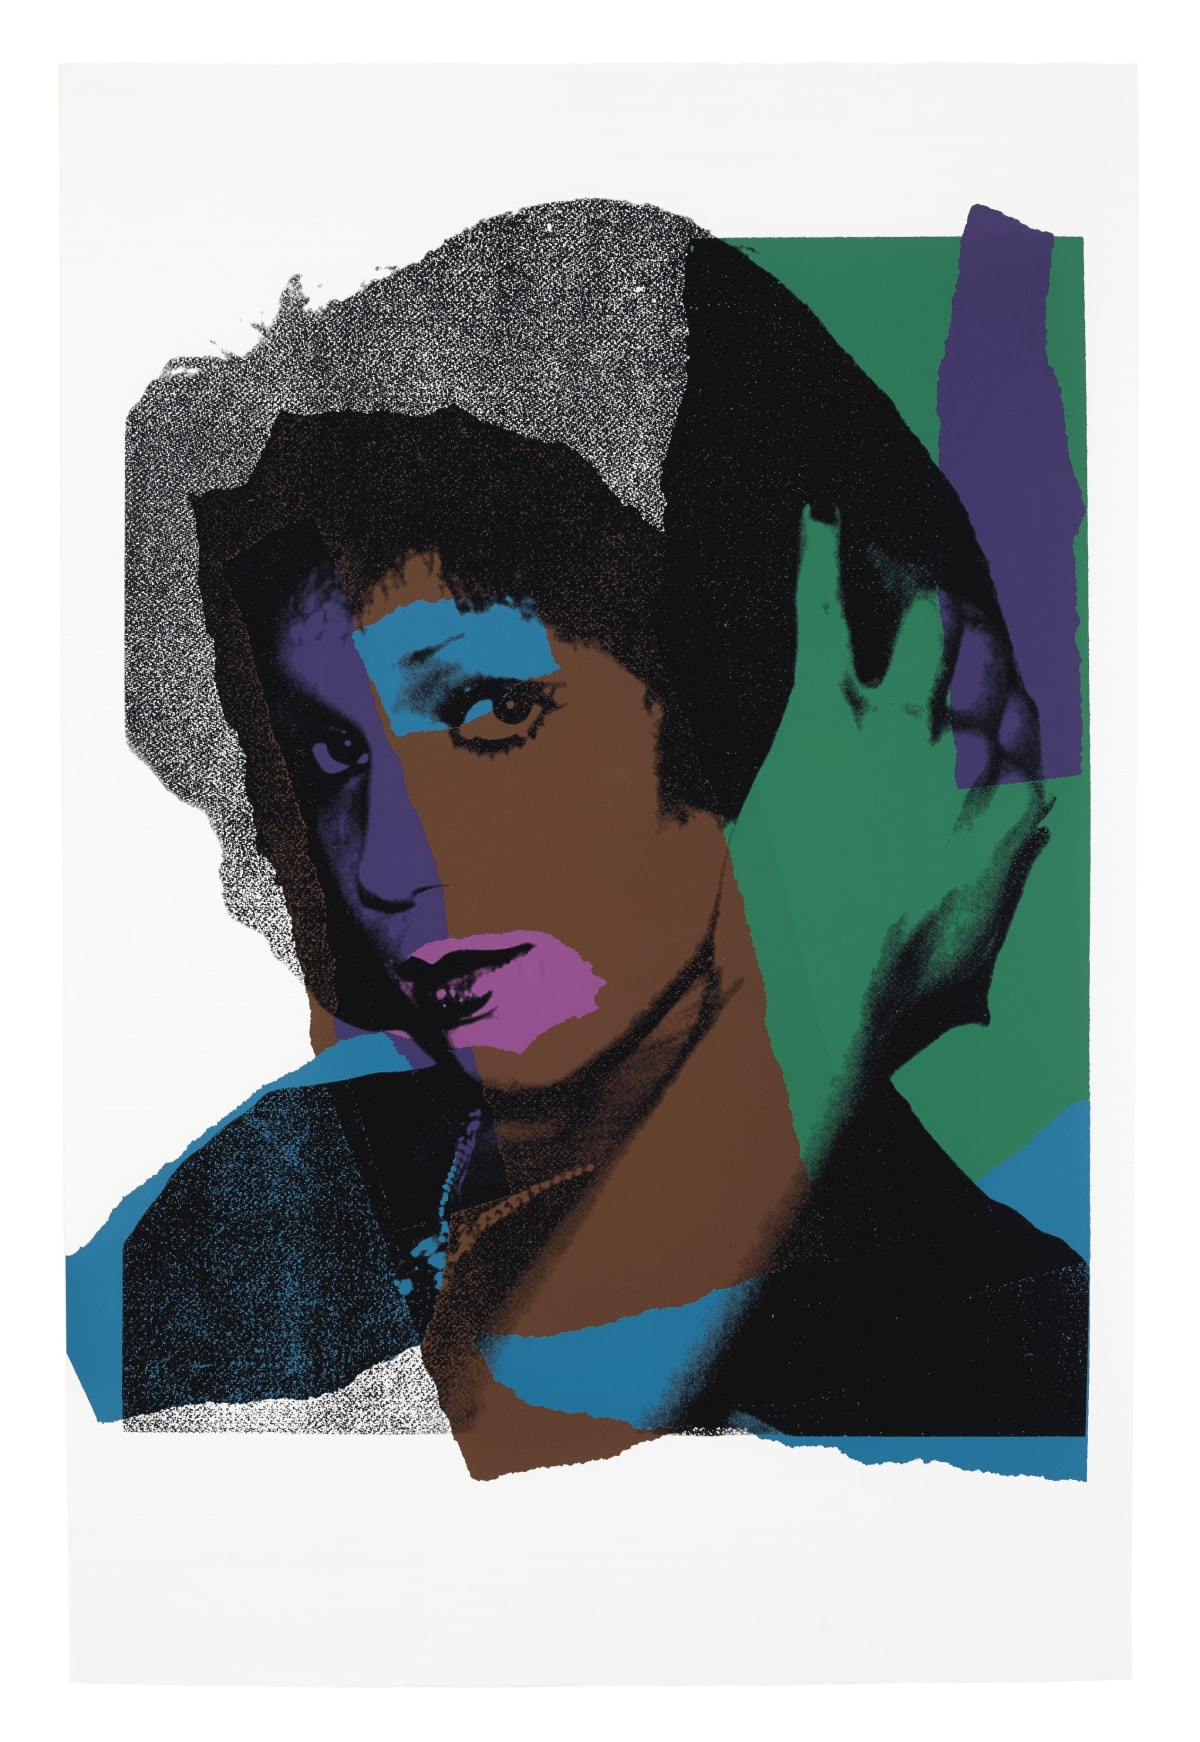 Ladies and Gentlemen, II.132, 1975, by Andy Warhol, Portfolio of Ten Screenprints from an edition of 125, at Coskun Fine Art